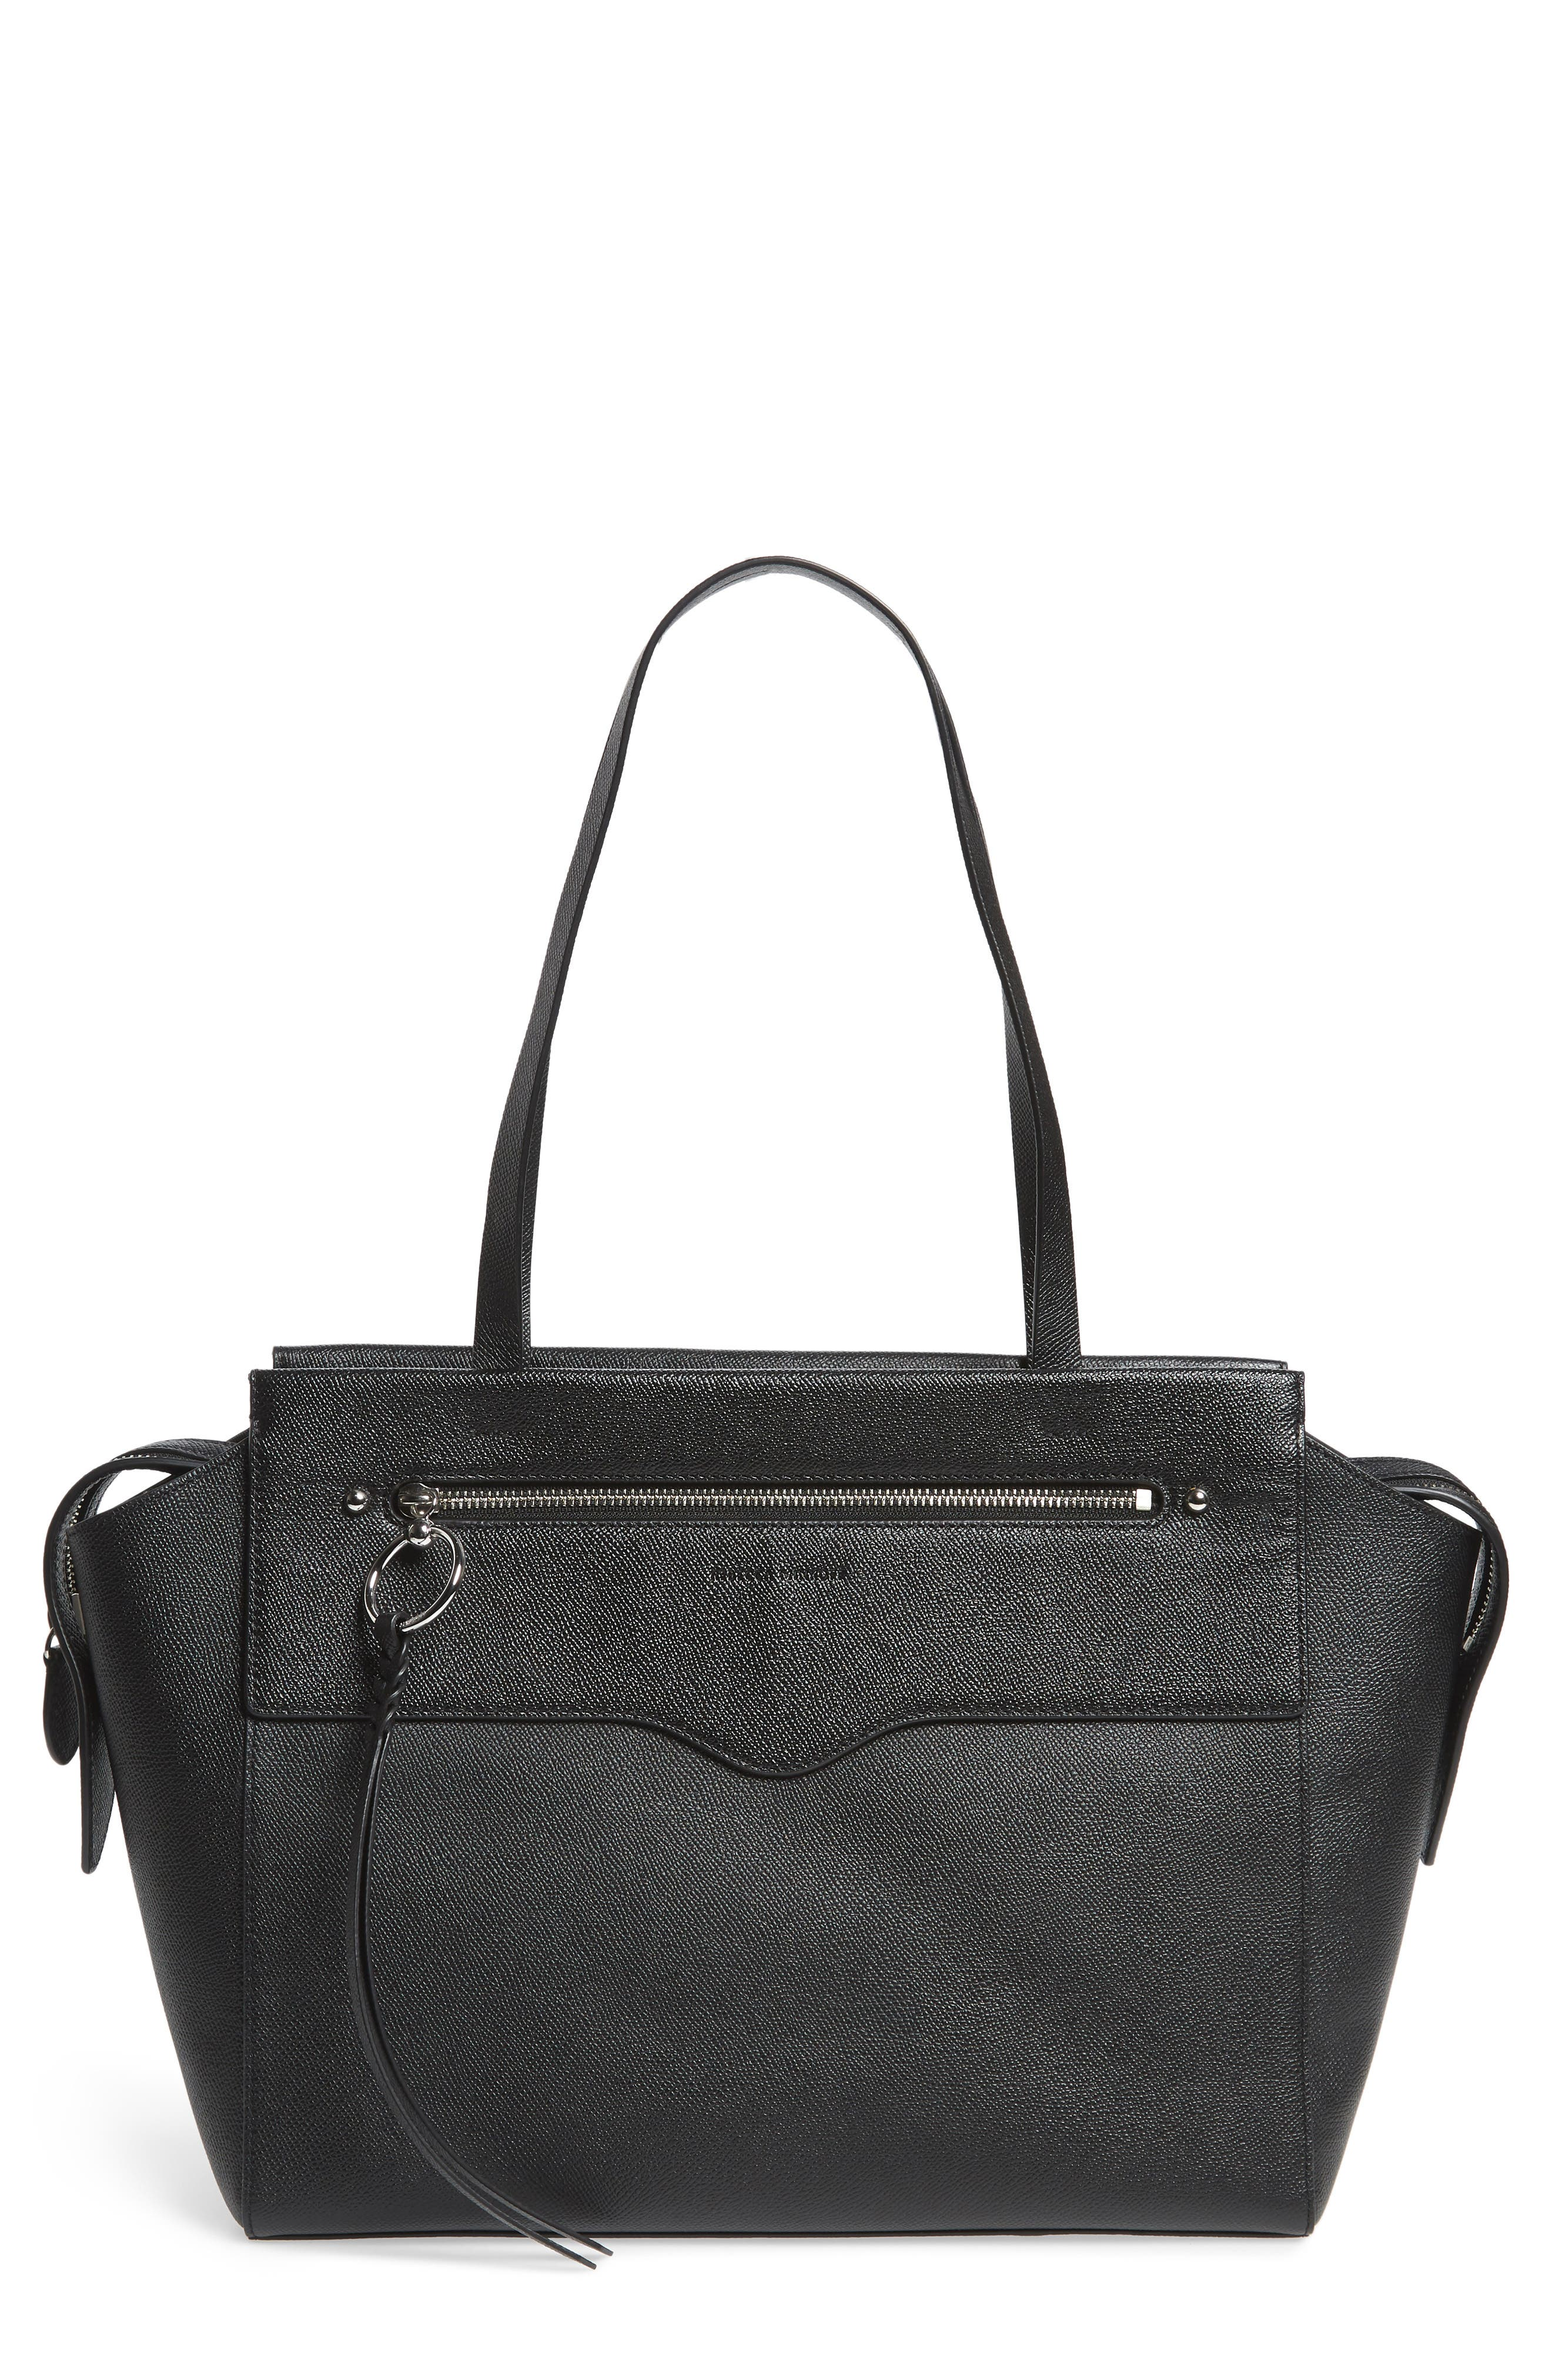 Image of Rebecca Minkoff Gabby Leather Tote